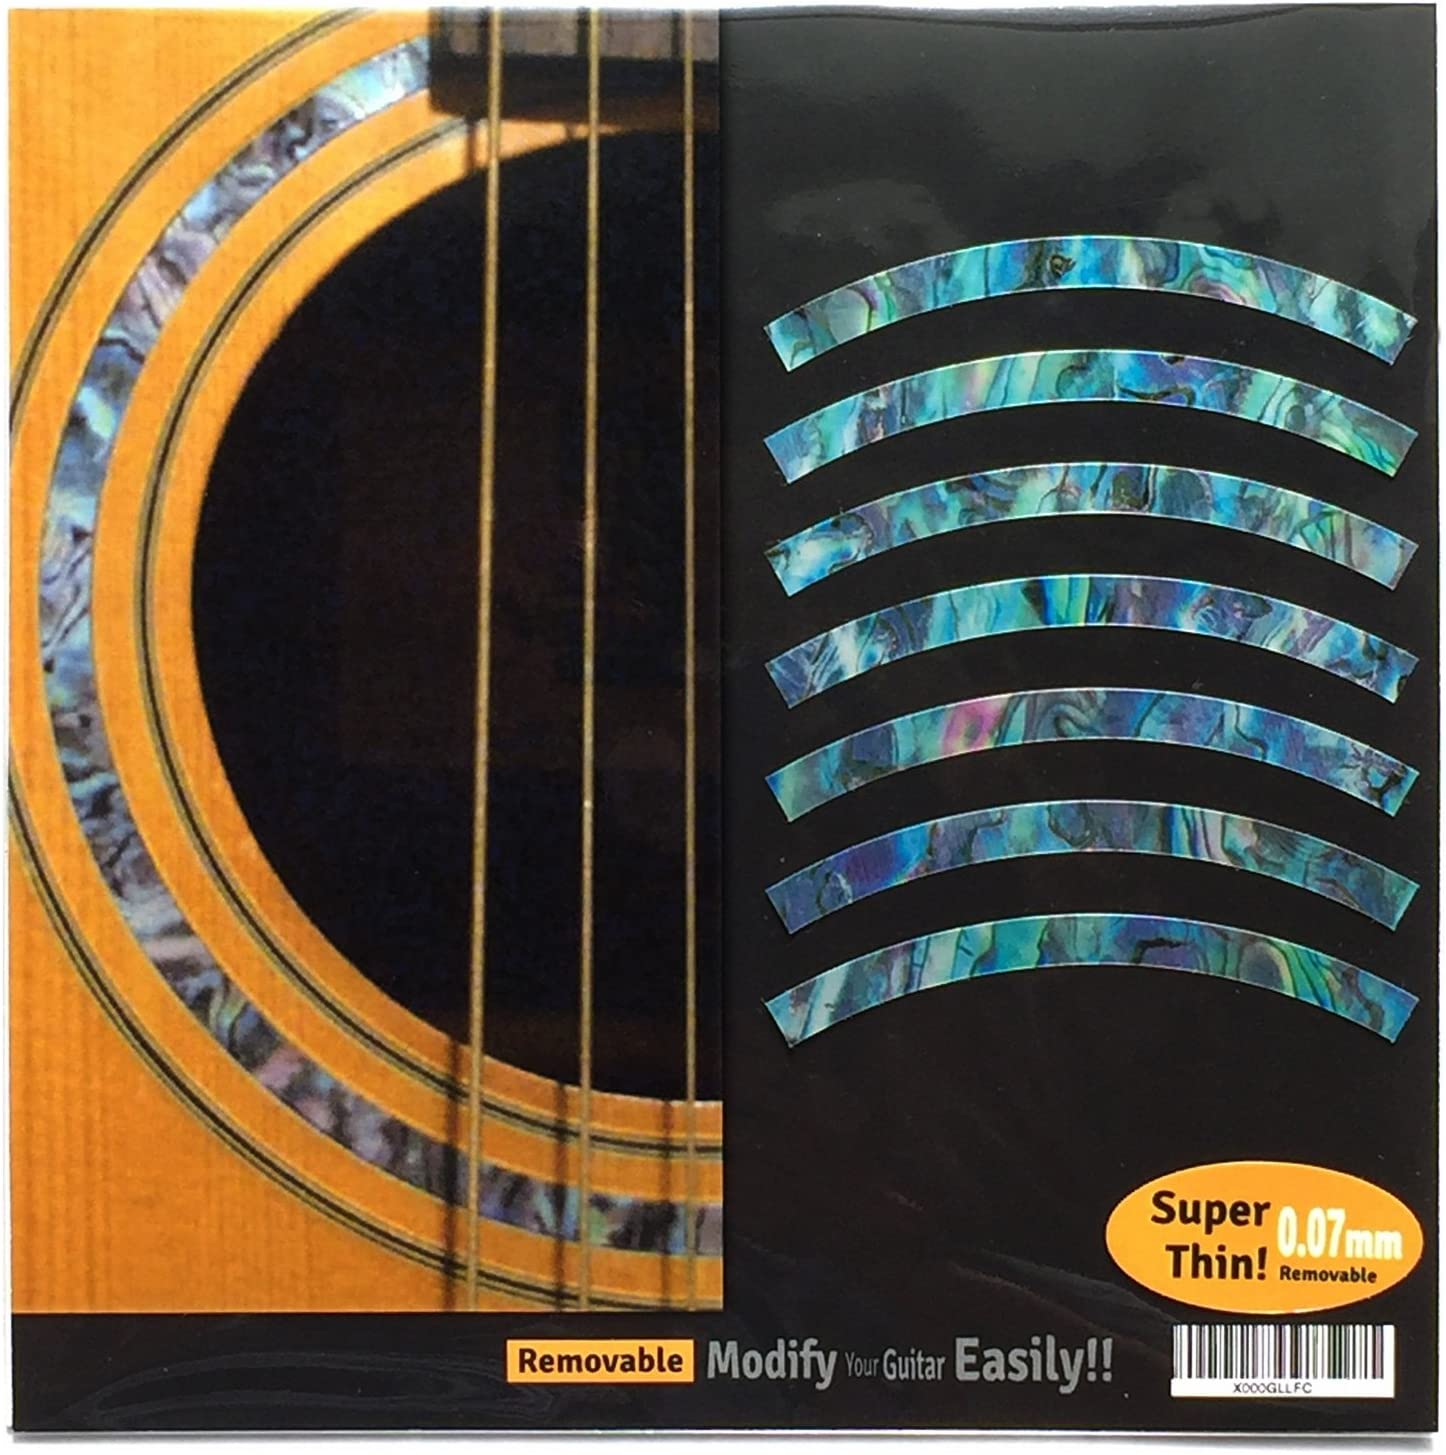 Inlay Sticker Decal Acoustic Guitar Purflinng Sound hole In Abalone Theme - Rosette Strip /BL